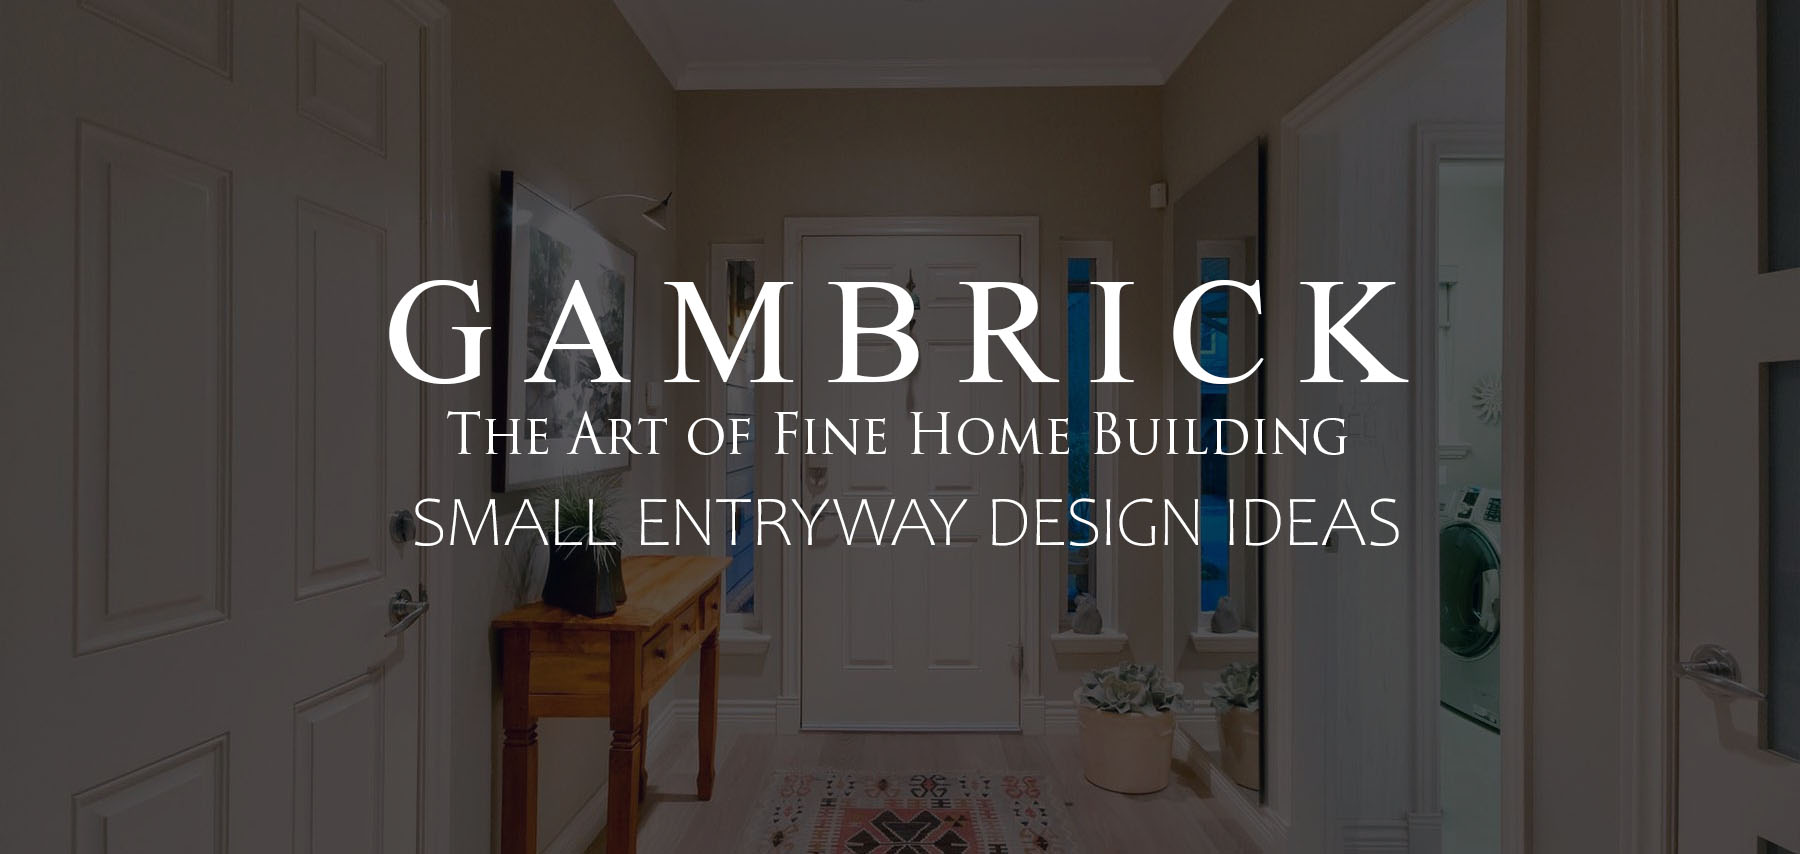 12 best small entryway design ideas banner pic | Gambrick